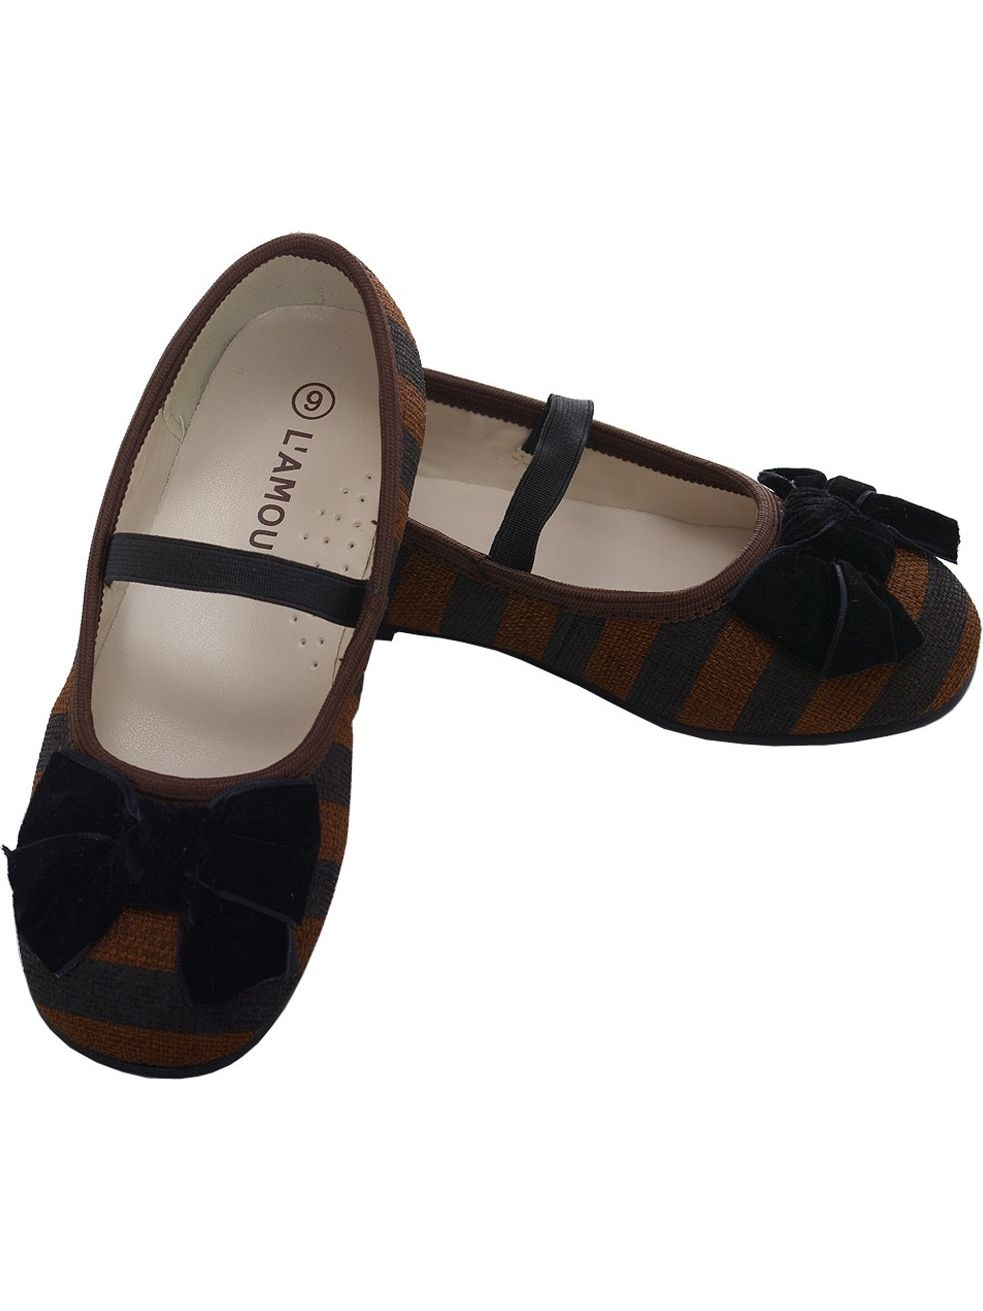 L 'Amour Brown Black Stripe Bow Slip On Dress Shoes Little Girls 11-4